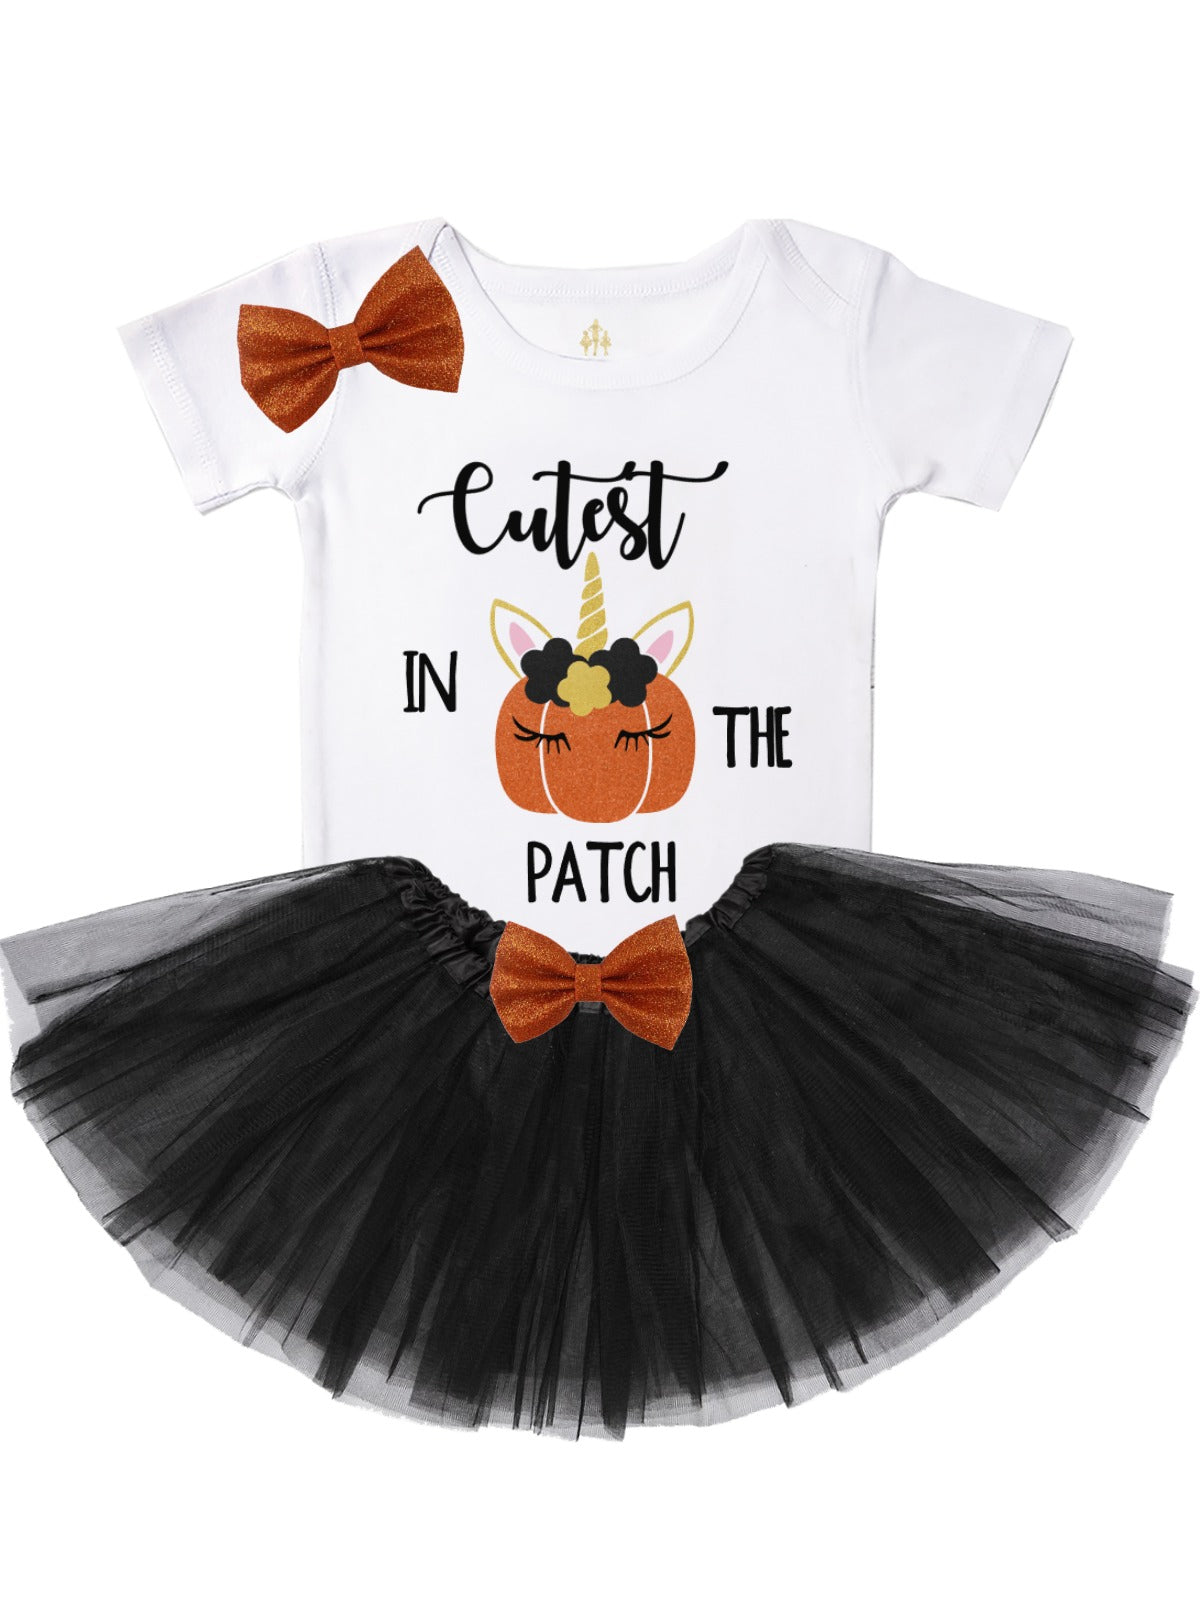 7ca5d3b0ed3b6 cutest pumpkin in the patch unicorn tutu outfit